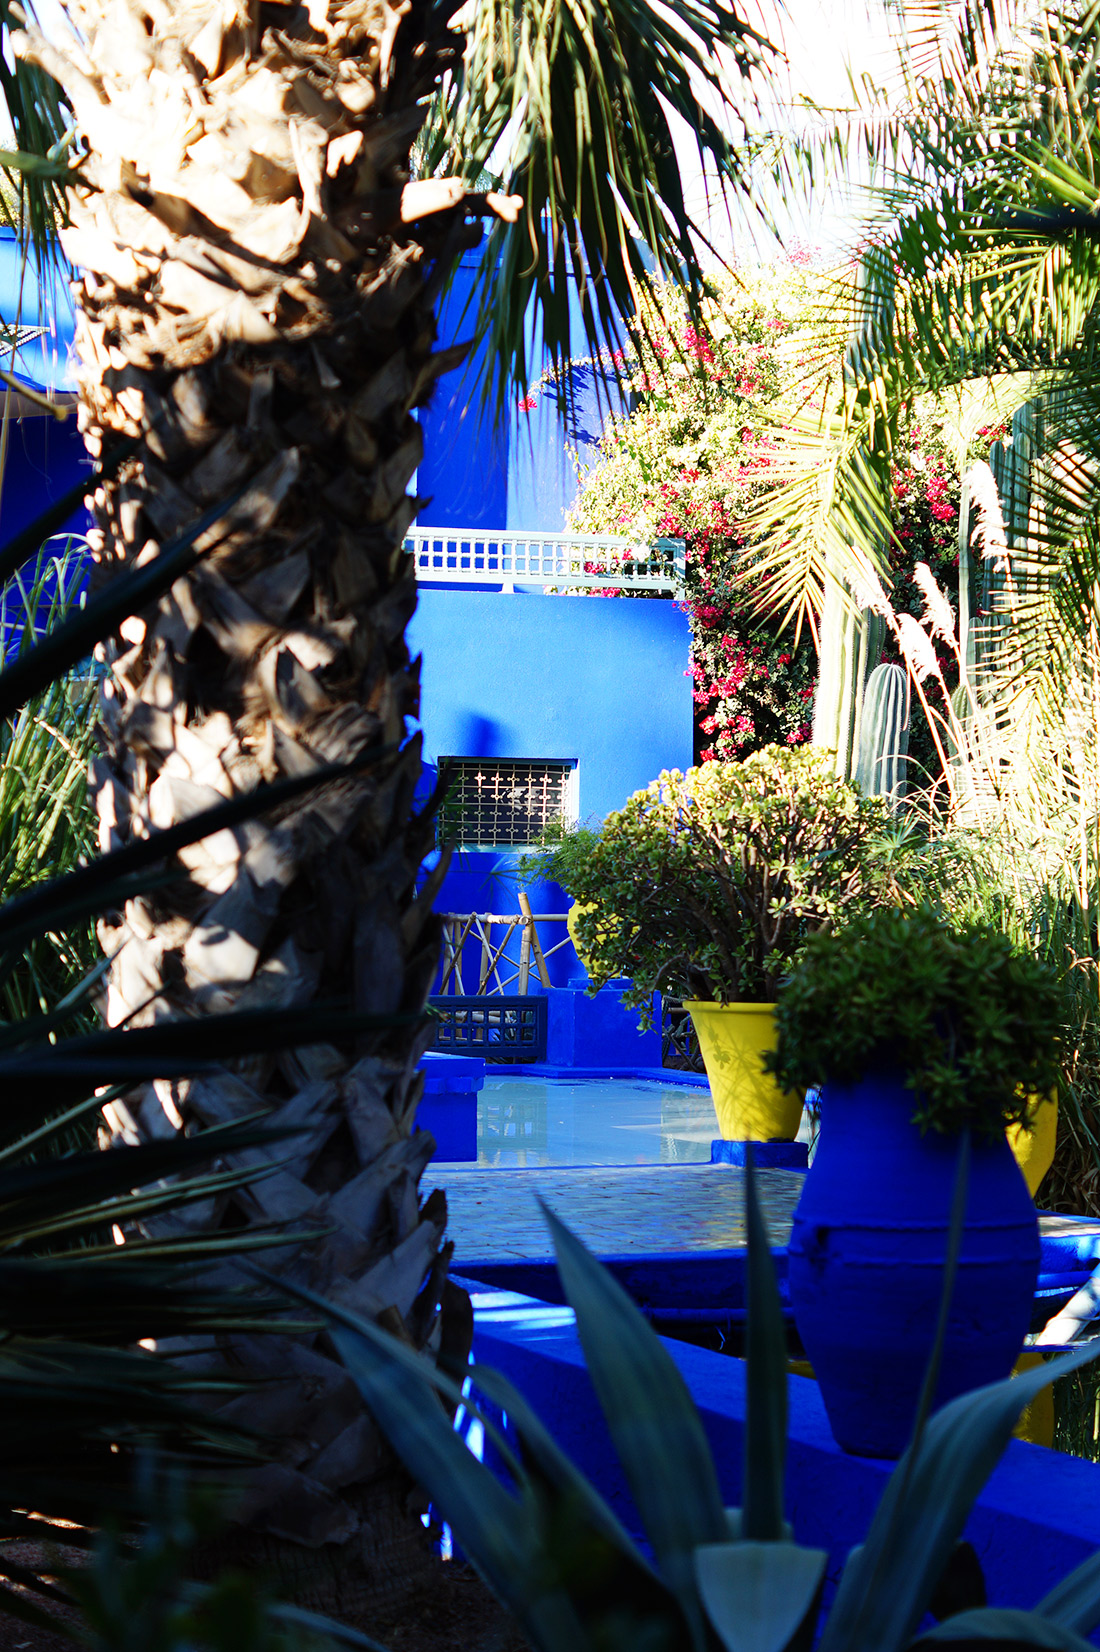 Bag-at-you---Fashion-blog---Postcard-from-Marrakesh---Jardin-Majorelle